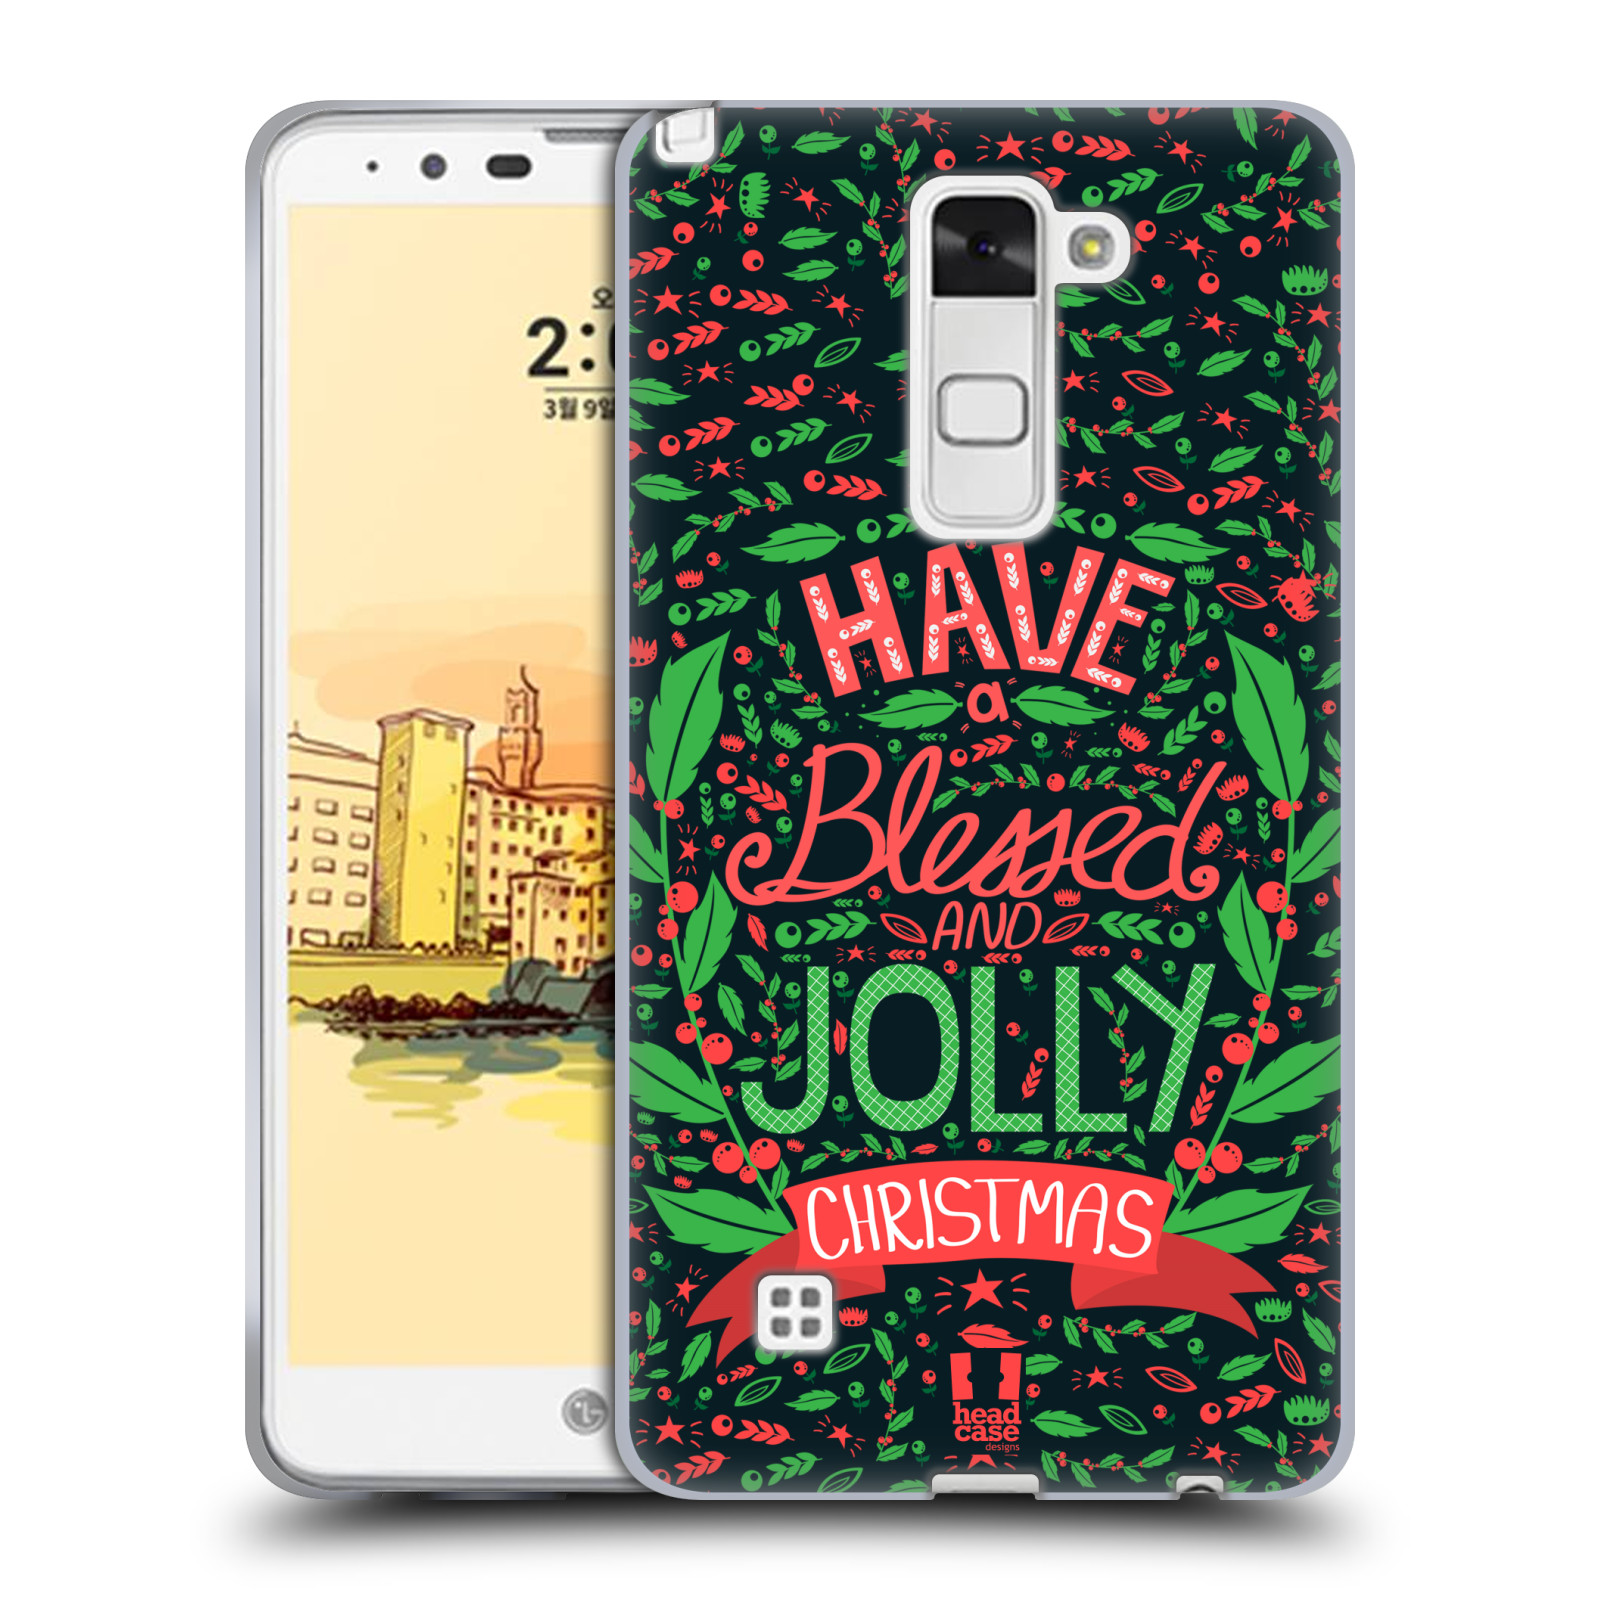 HEAD CASE DESIGNS BLESSED CHRISTMAS SOFT GEL CASE FOR LG STYLUS 2